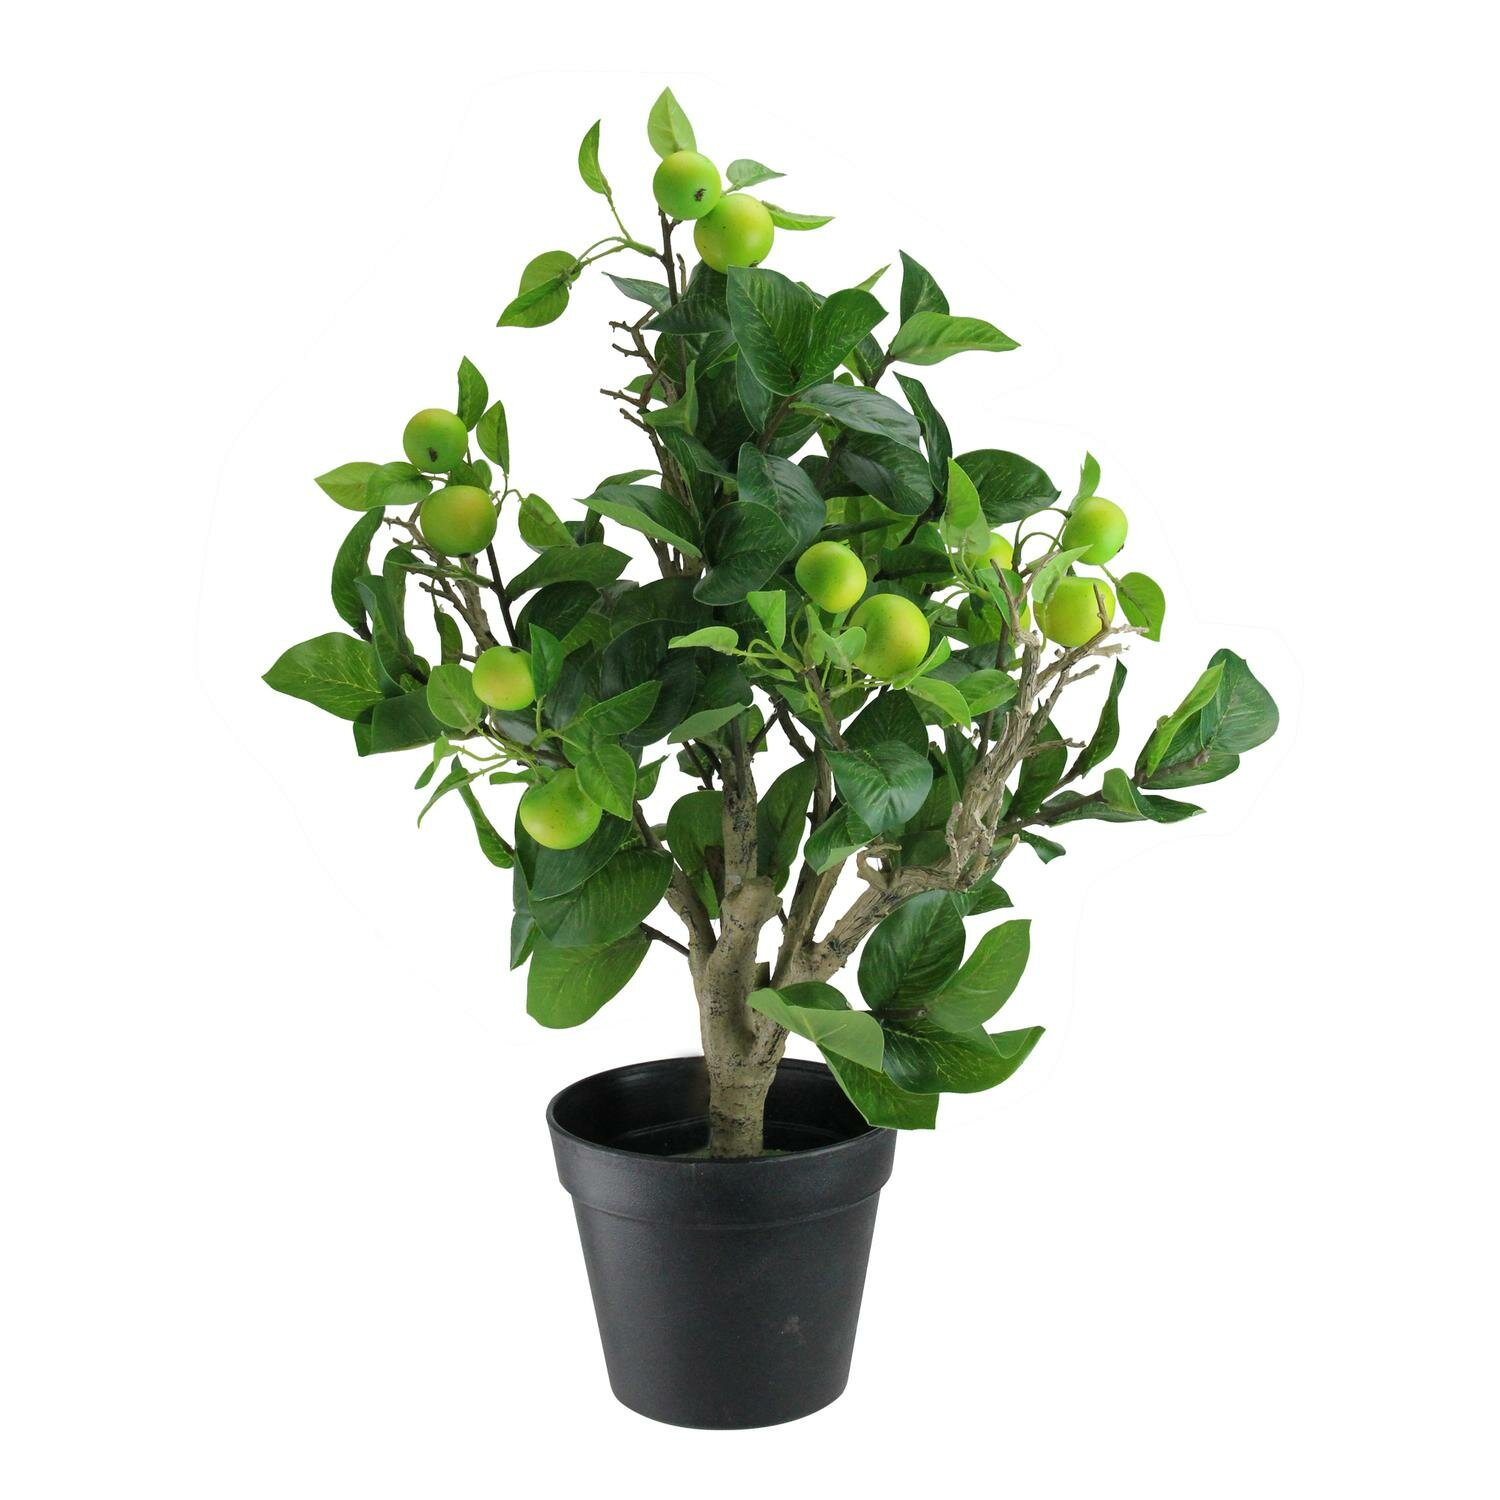 Northlight 23 Artificial Potted Bonsai Style Decorative Green Apple Tree Wayfair